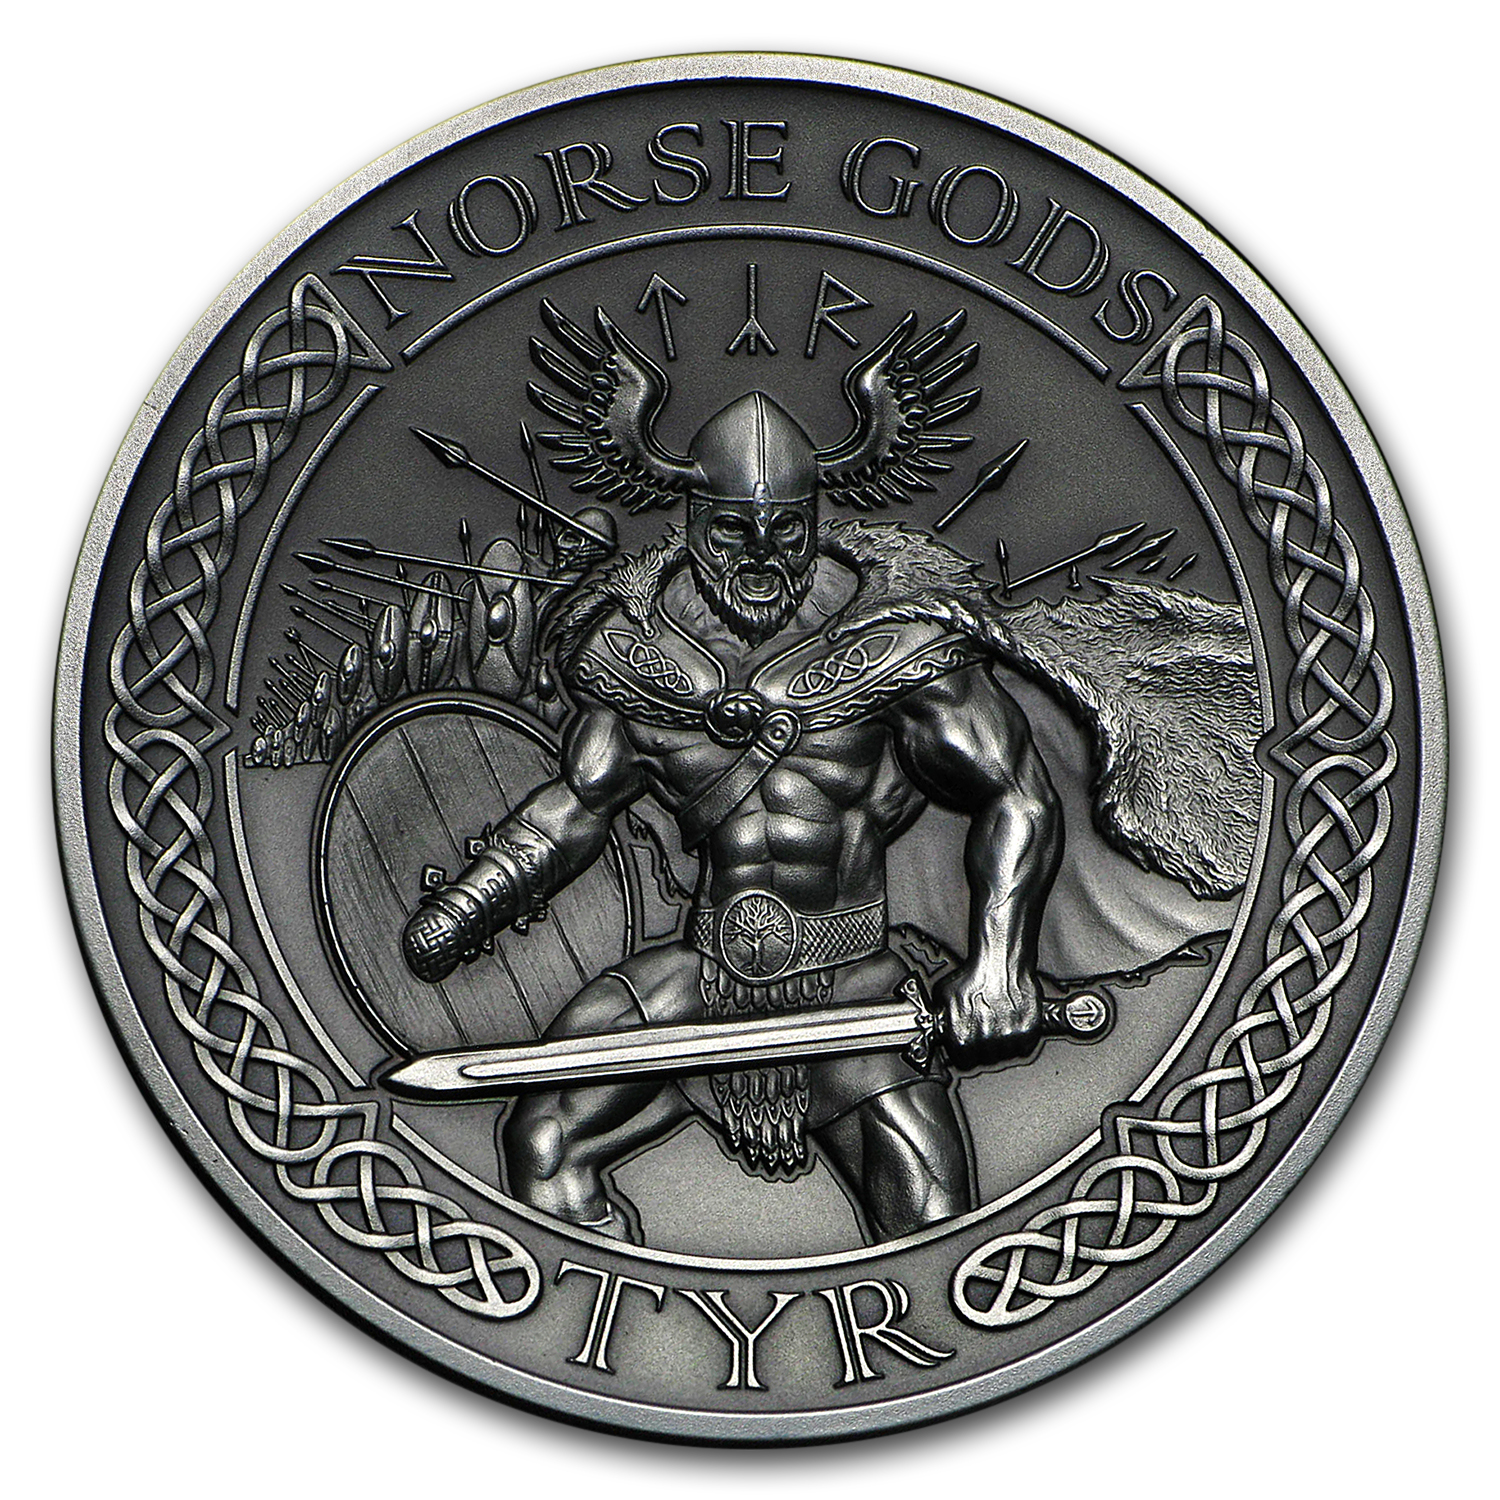 2015 Cook Islands 2 oz Silver High Relief Norse Gods: Tyr